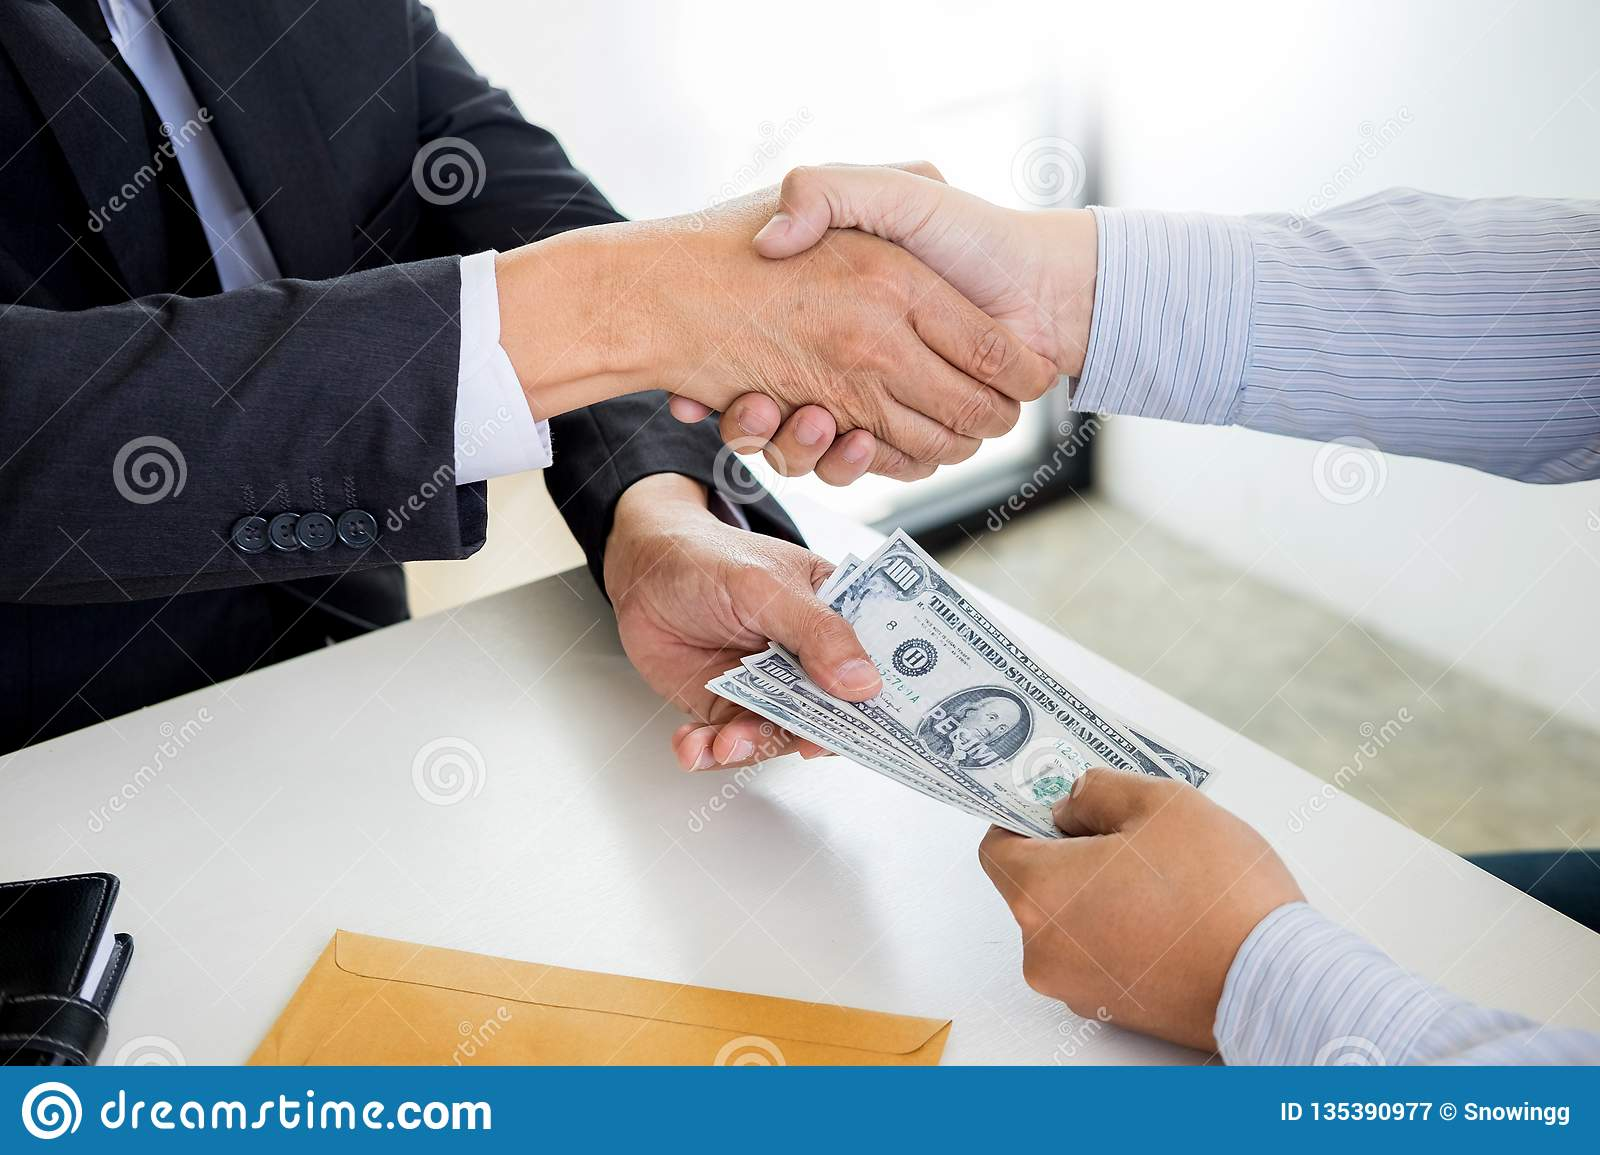 Businessman or politician taking bribe and Shaking Hands With Money in a suit, corruption trade exchange concept